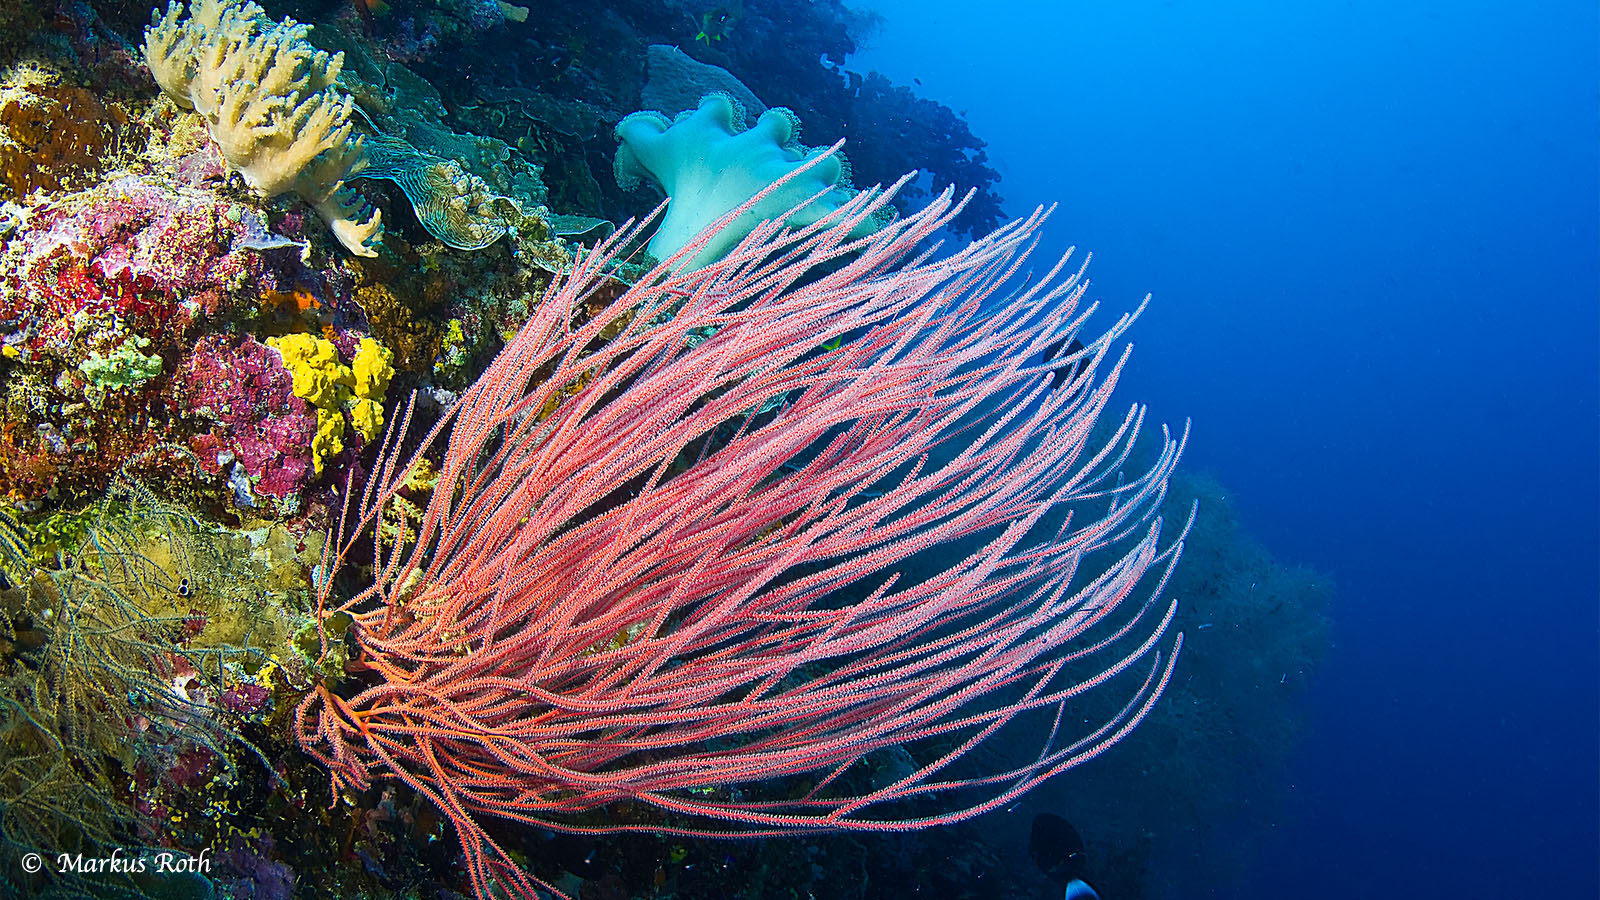 What does the dive tourist care about?